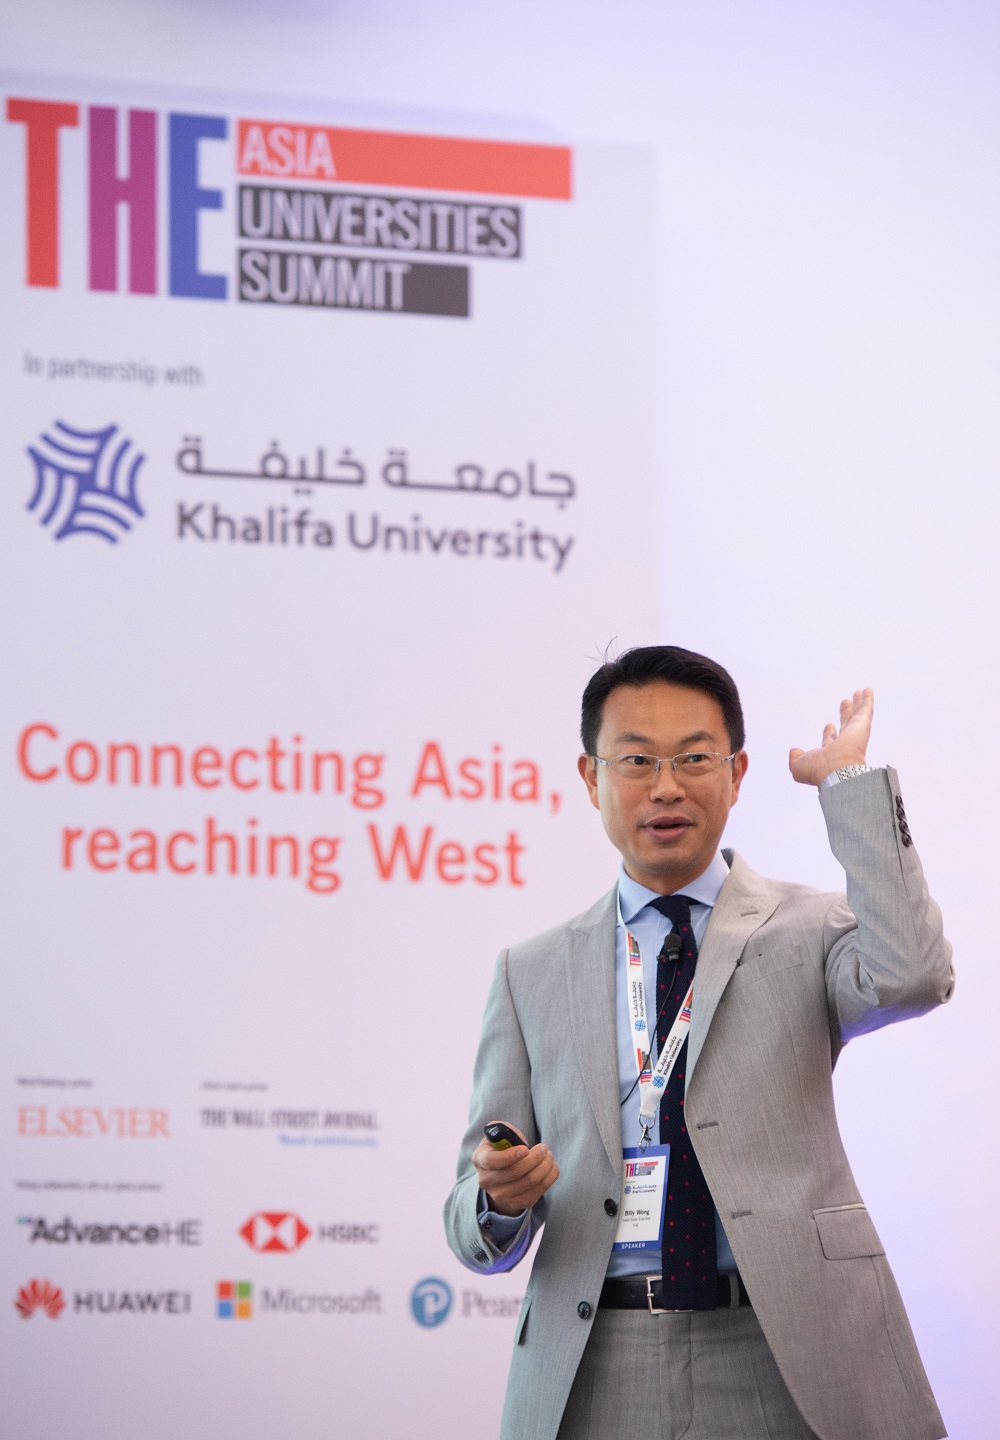 Khalifa University to Host Times Higher Education Asia Universities Summit 2019 in  Abu Dhabi